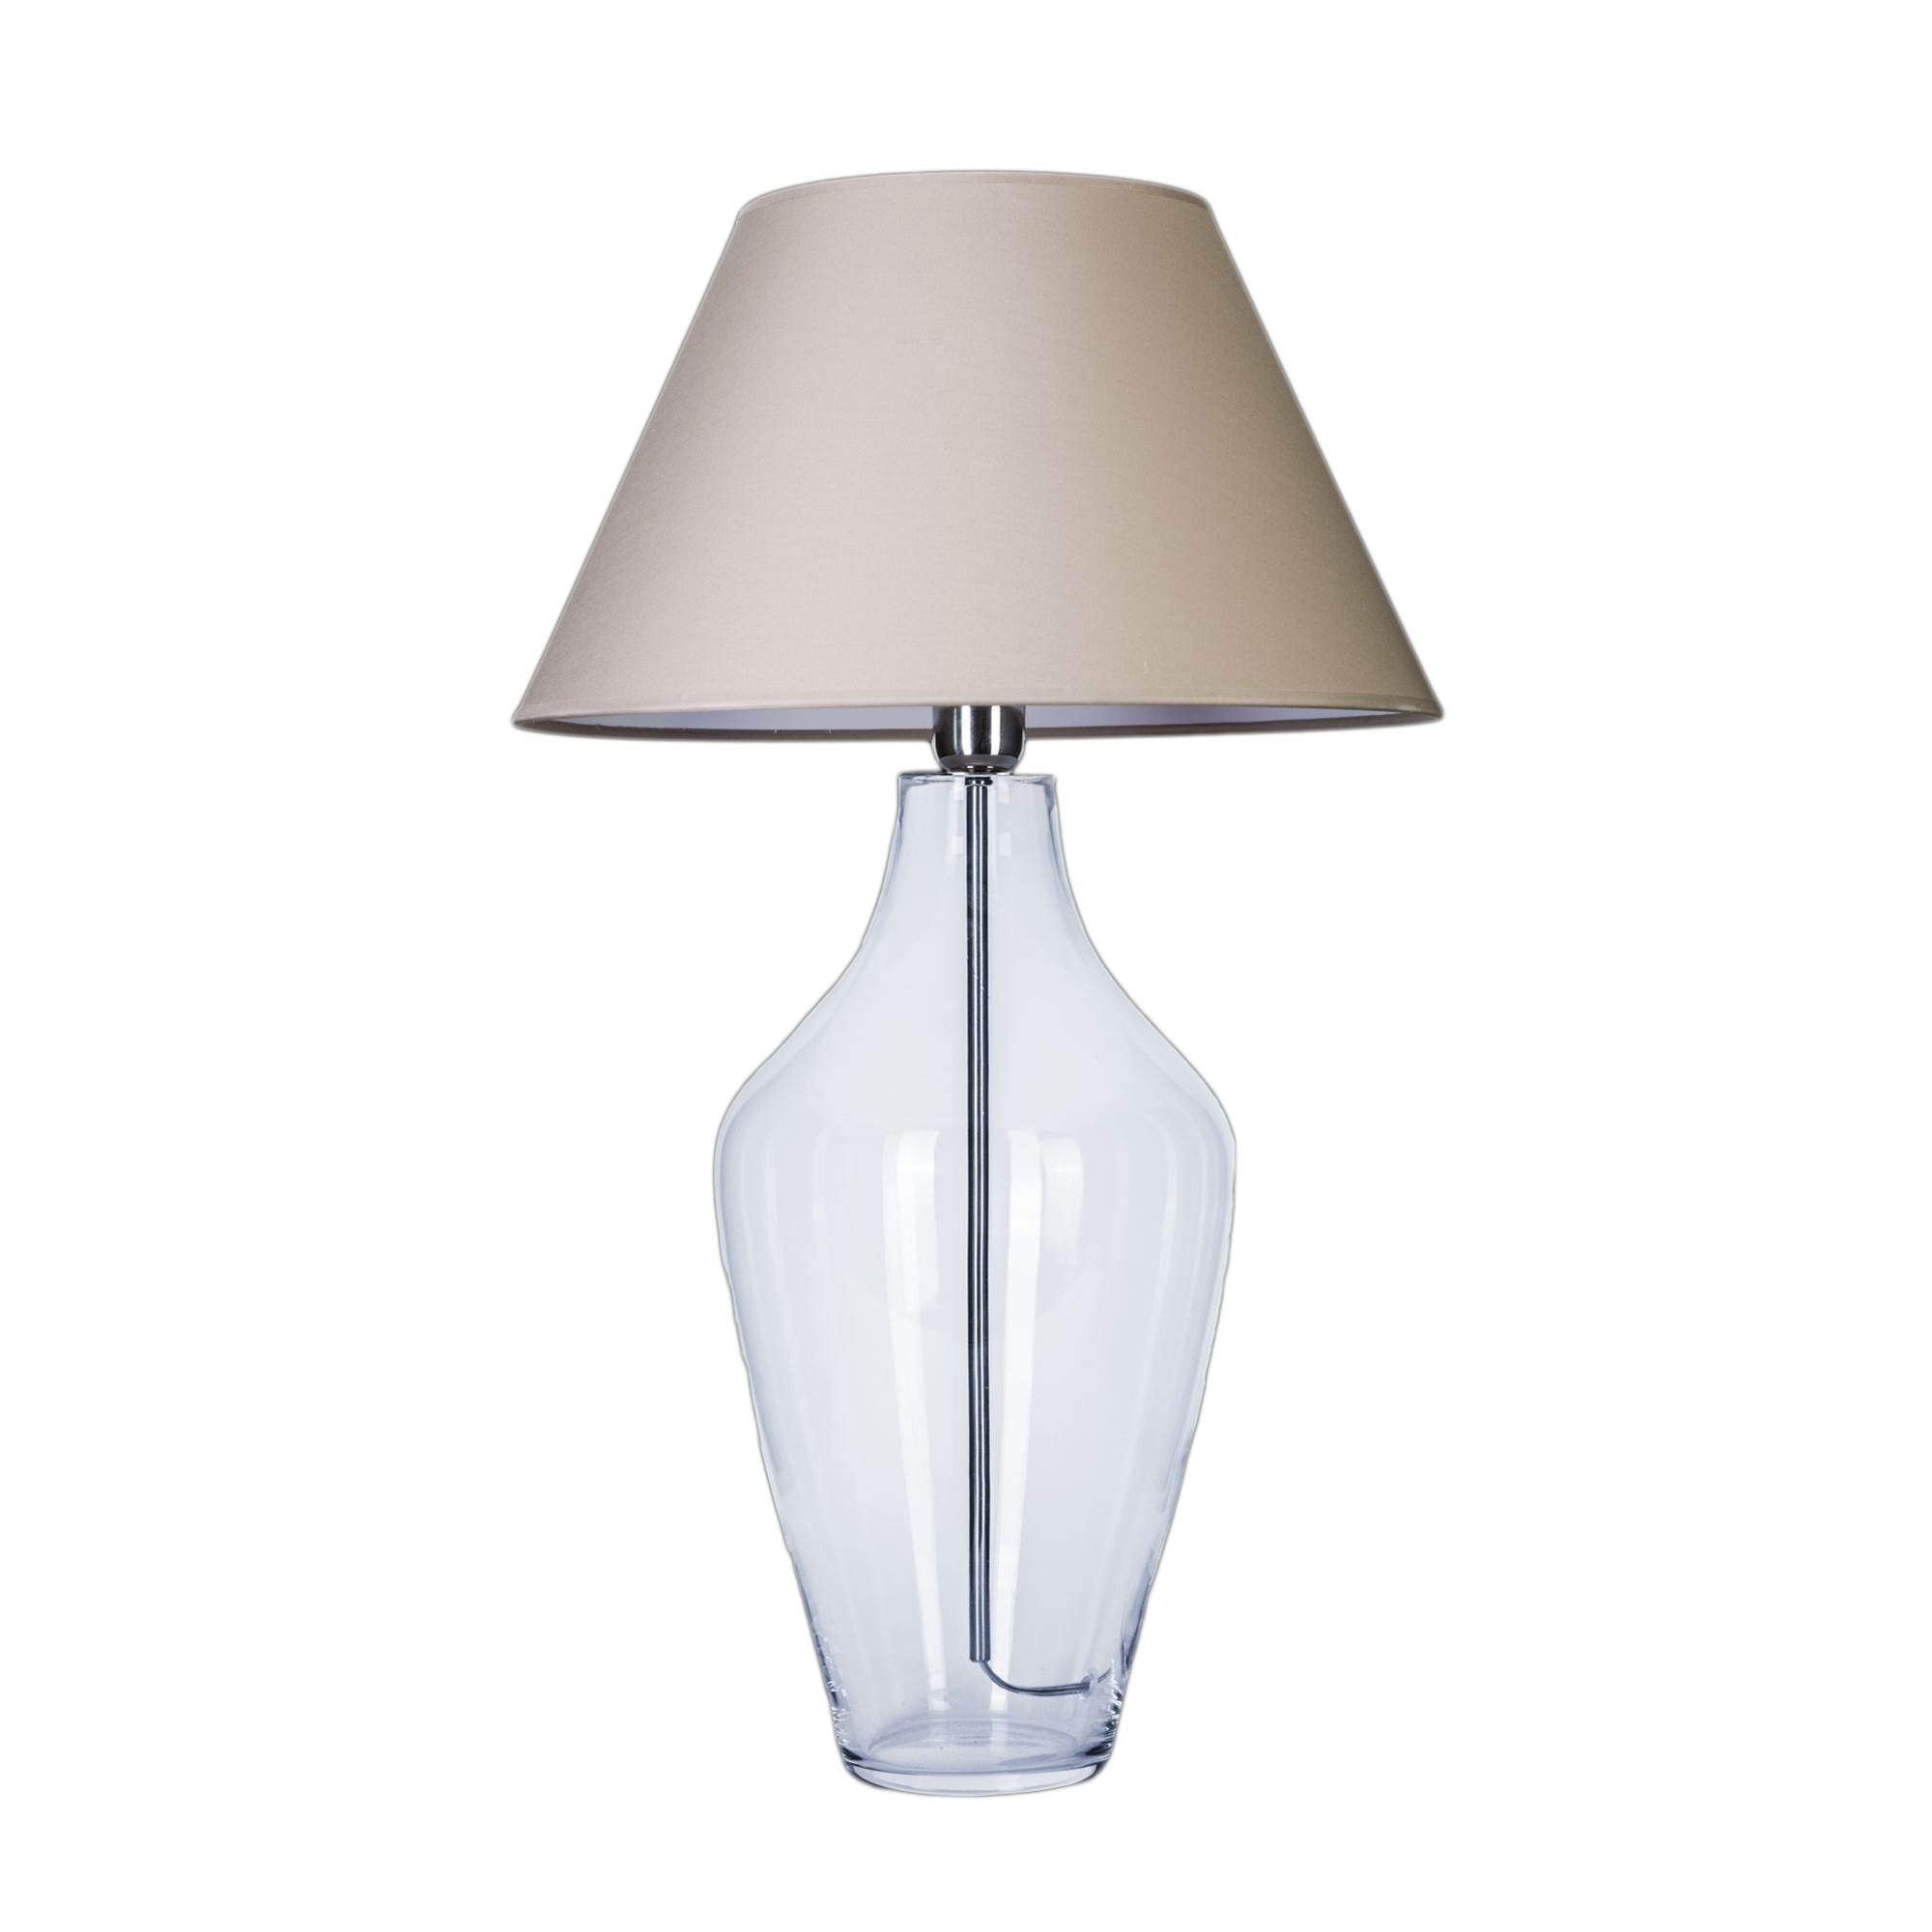 4 Concepts Valencia Small Clear Glass Table Lamp Grey White